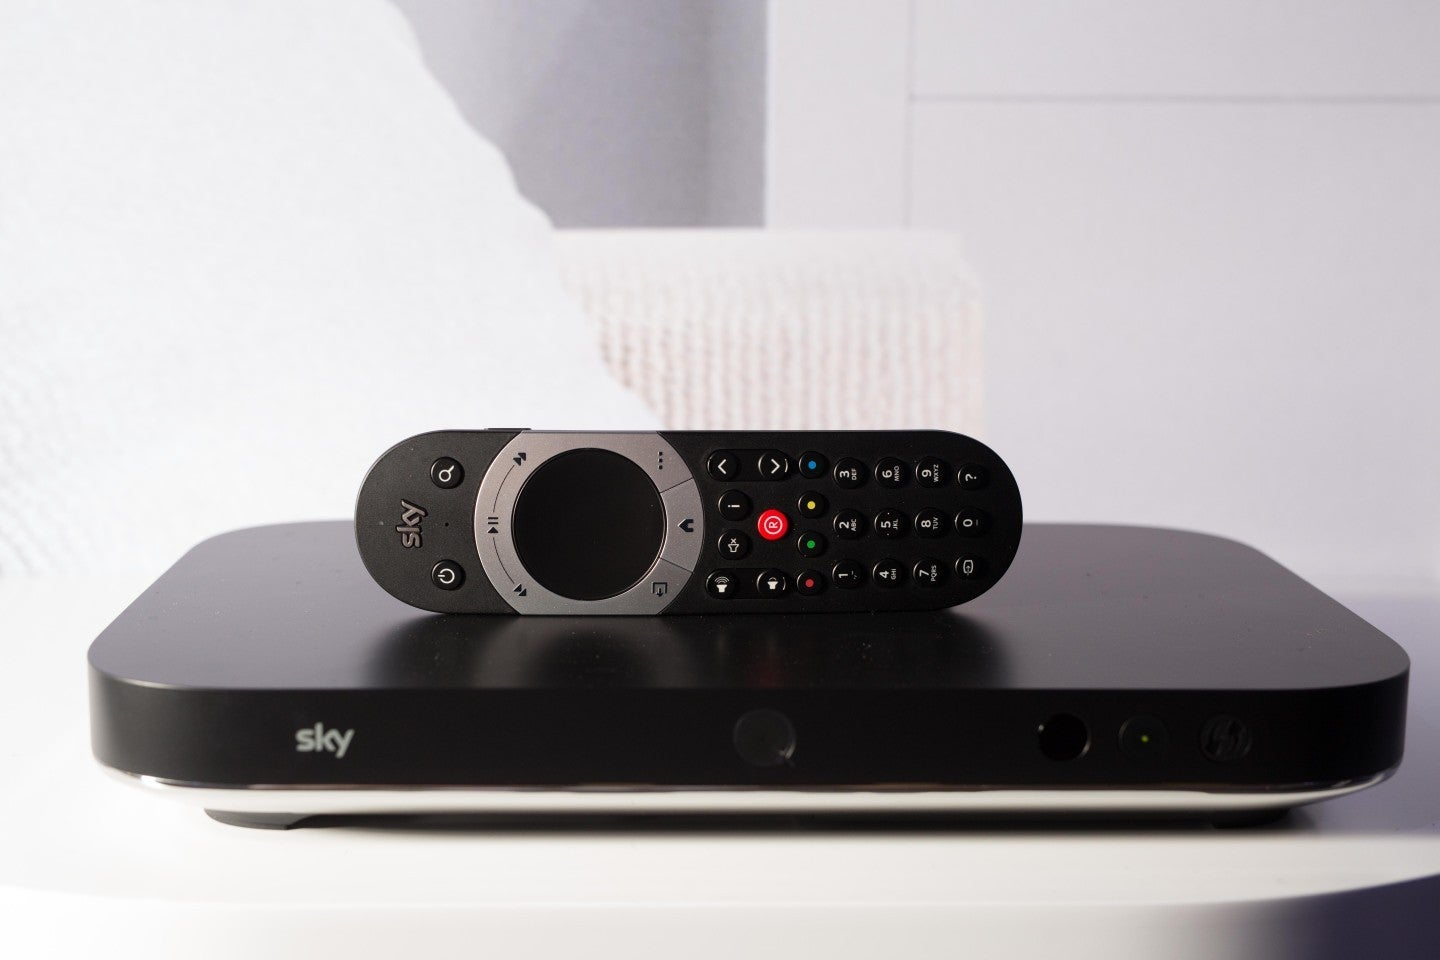 sky q sky moves into the future with its new premium subscription